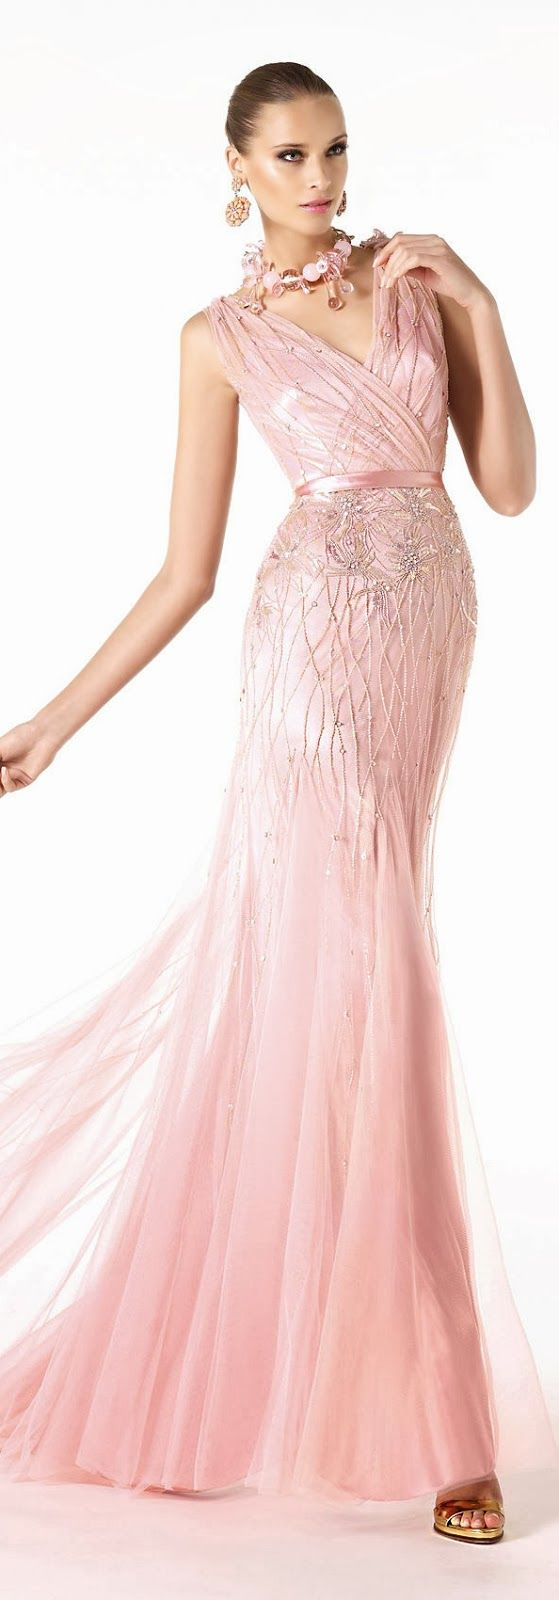 366 best www.Fashion-with-Style.com images on Pinterest   Clothing ...